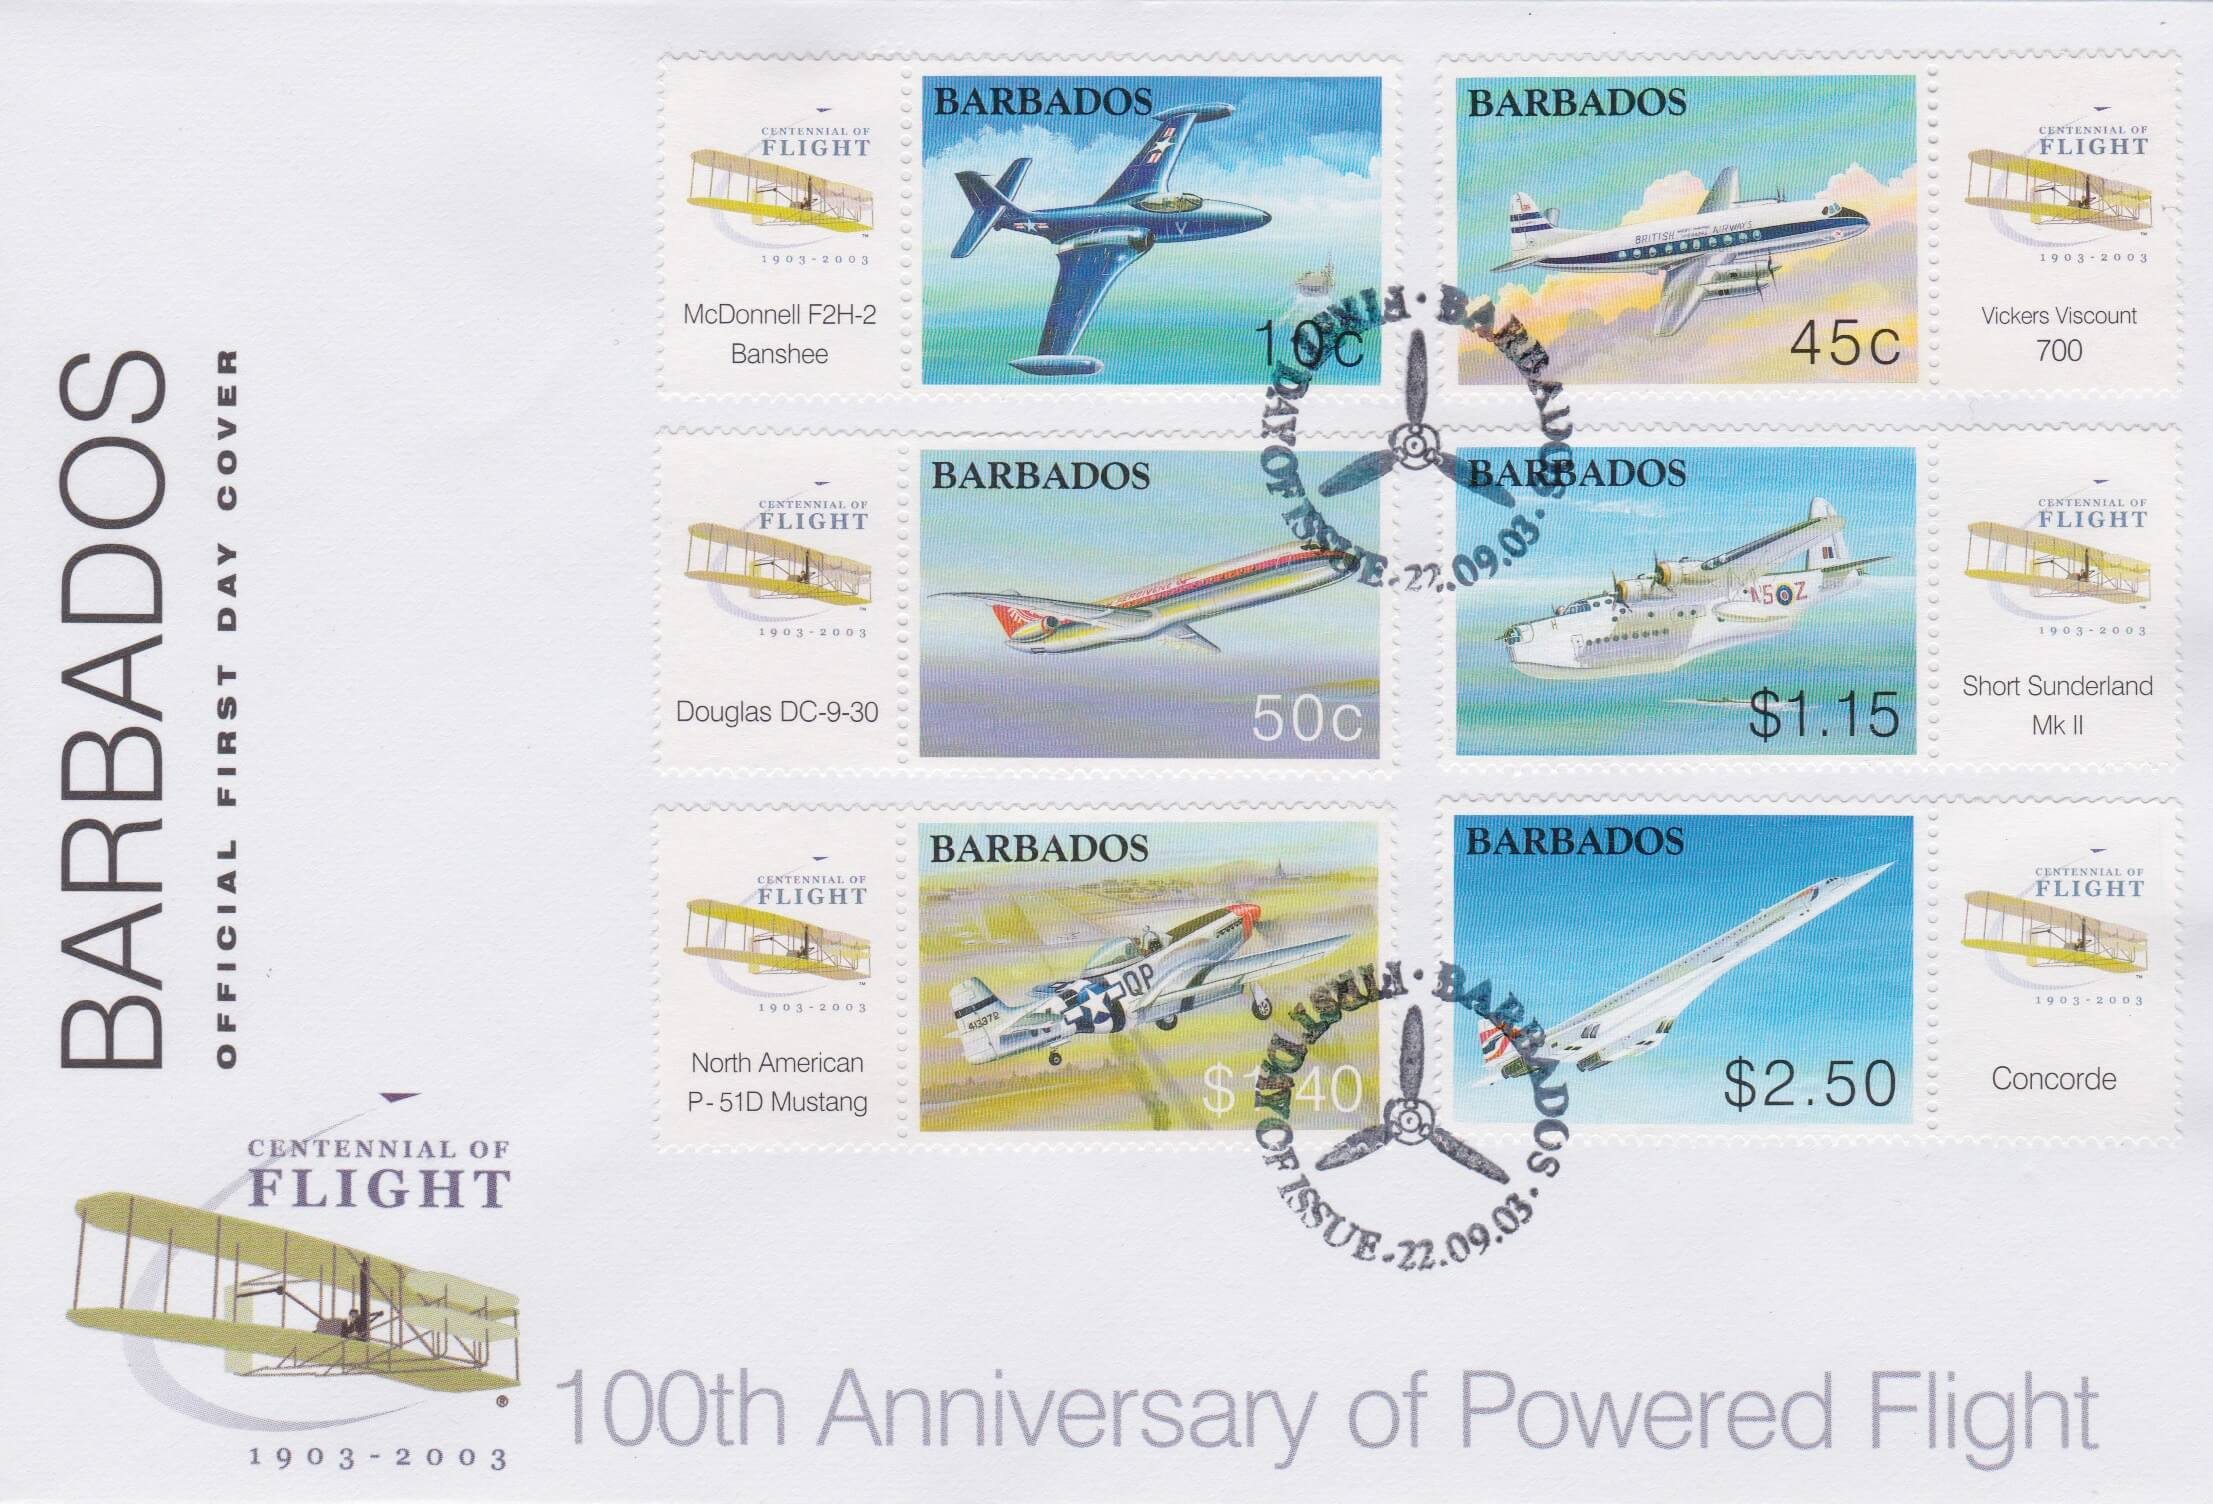 Barbados 100th Anniversary of Powered Flight FDC